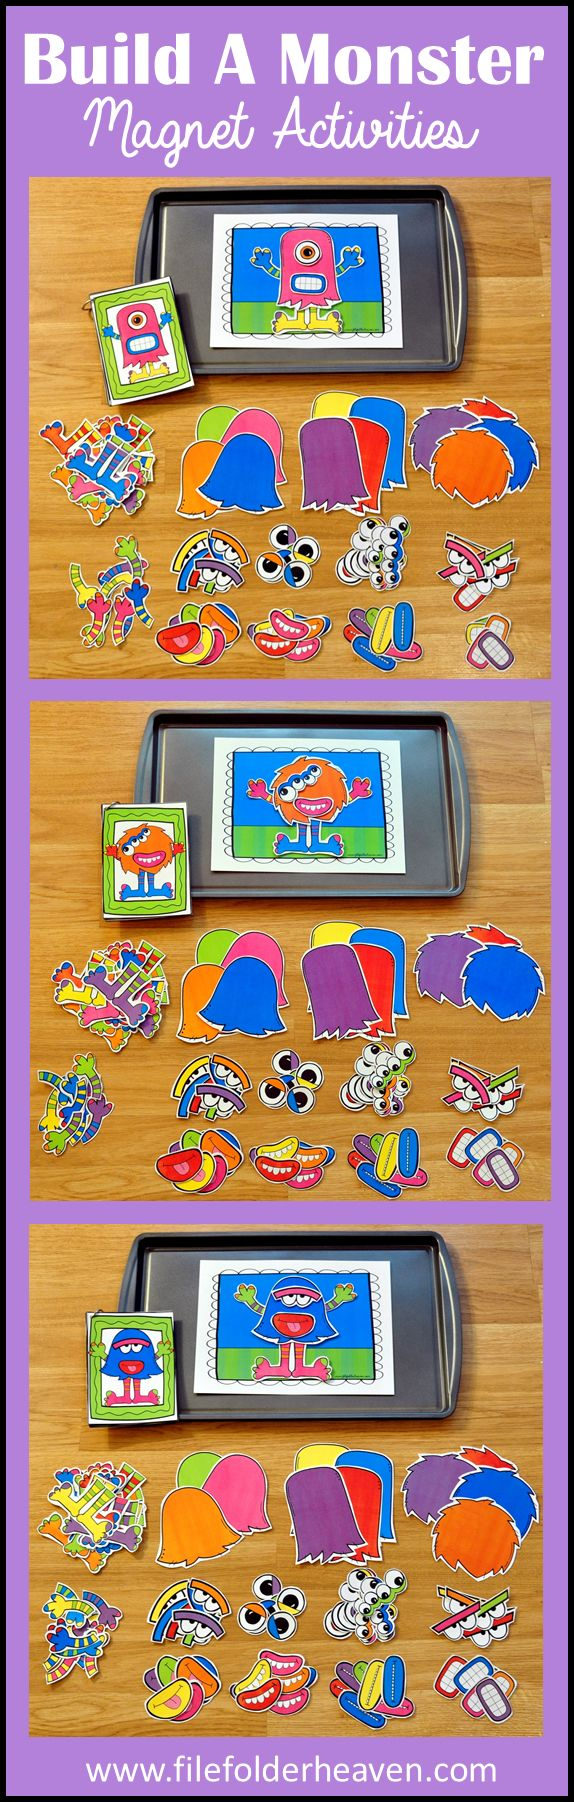 """These Build a Monster Center Activities can be set up as cookie sheet activities, a magnet center or completed as cut and glue activities. This activity includes: 1 background, 12 build a monster example cards, and a HUGE set of """"build a monster"""" building pieces for creative building (all in color).  In this activity, students work on visual discrimination skills, recognizing same and different, and replicating a model."""